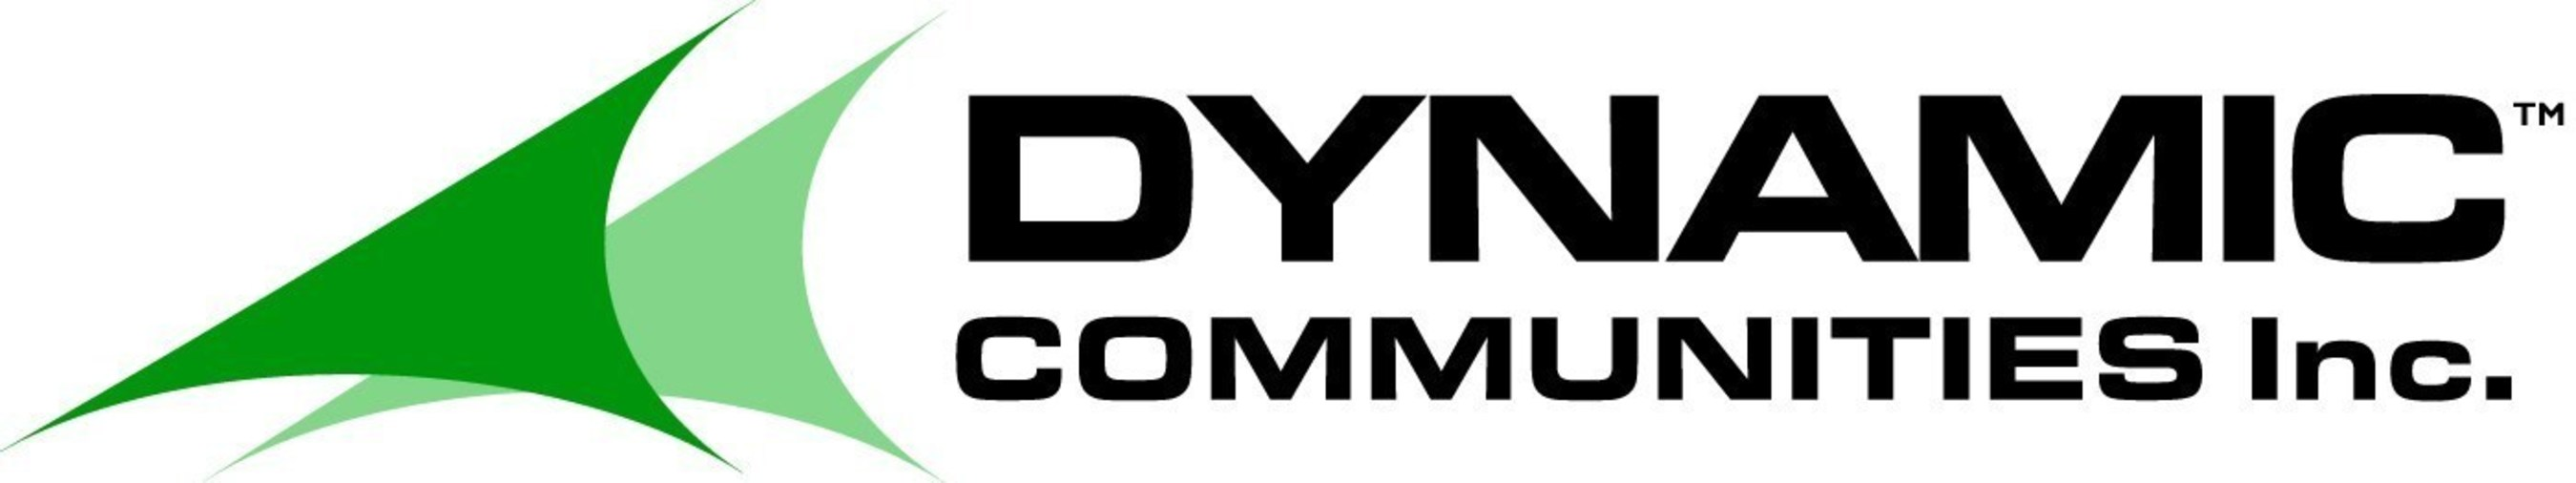 Dynamic Communities, Inc. Announces Collaboration with Microsoft for Summit 2016